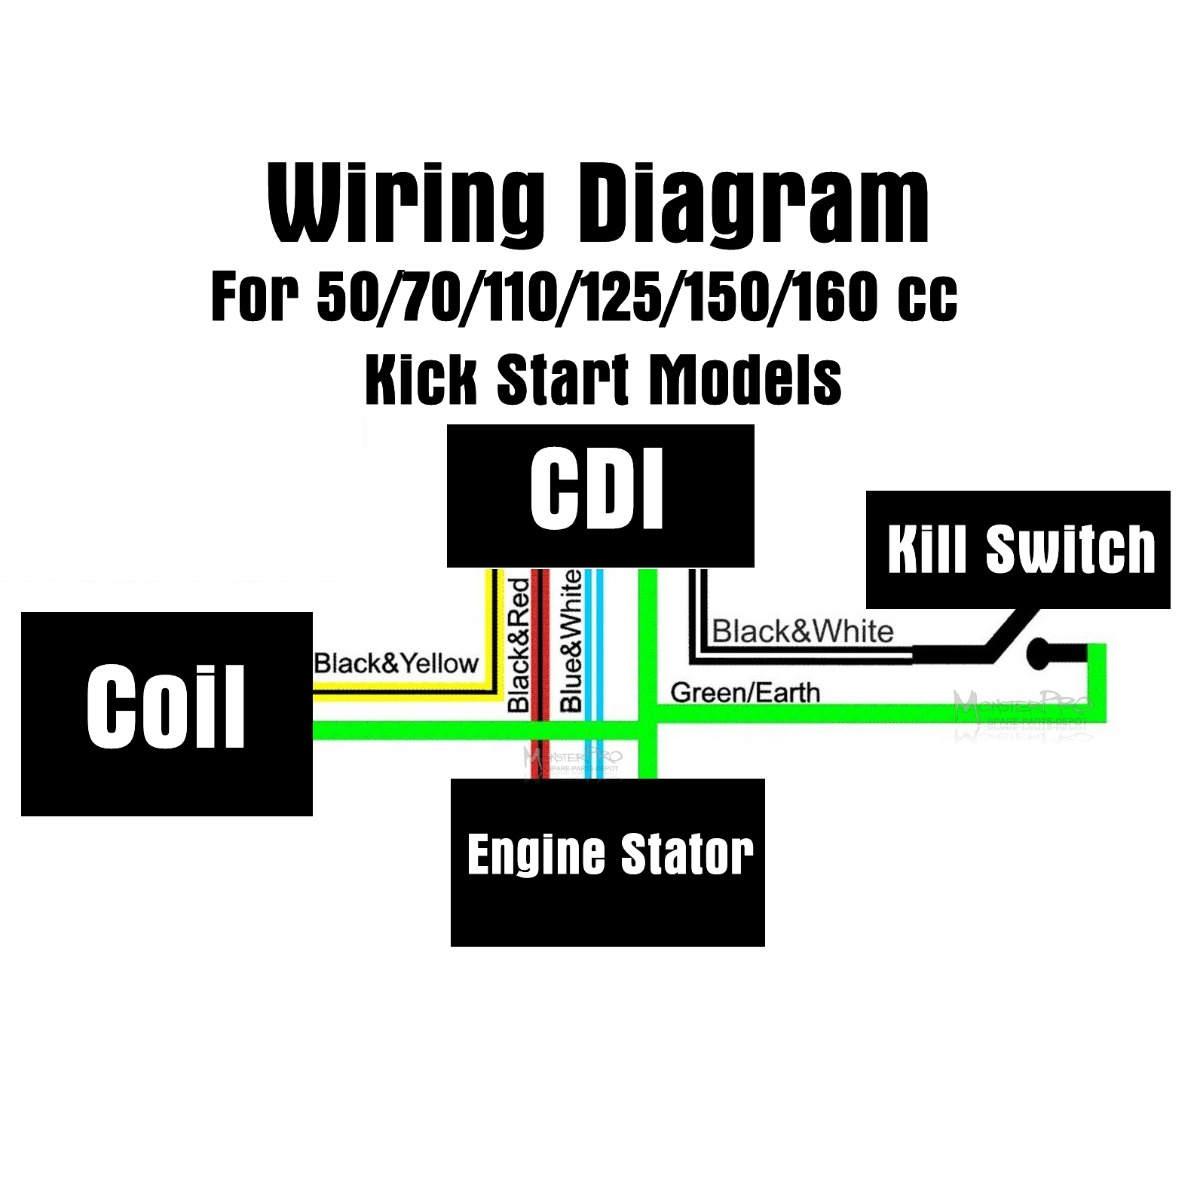 Gy6 150cc Wire Harness Diagram Wiring And Engine Roketa Go Kart Mad Dog Ice Bear Scooter Stock Furthermore Schematic Bmi Likewise